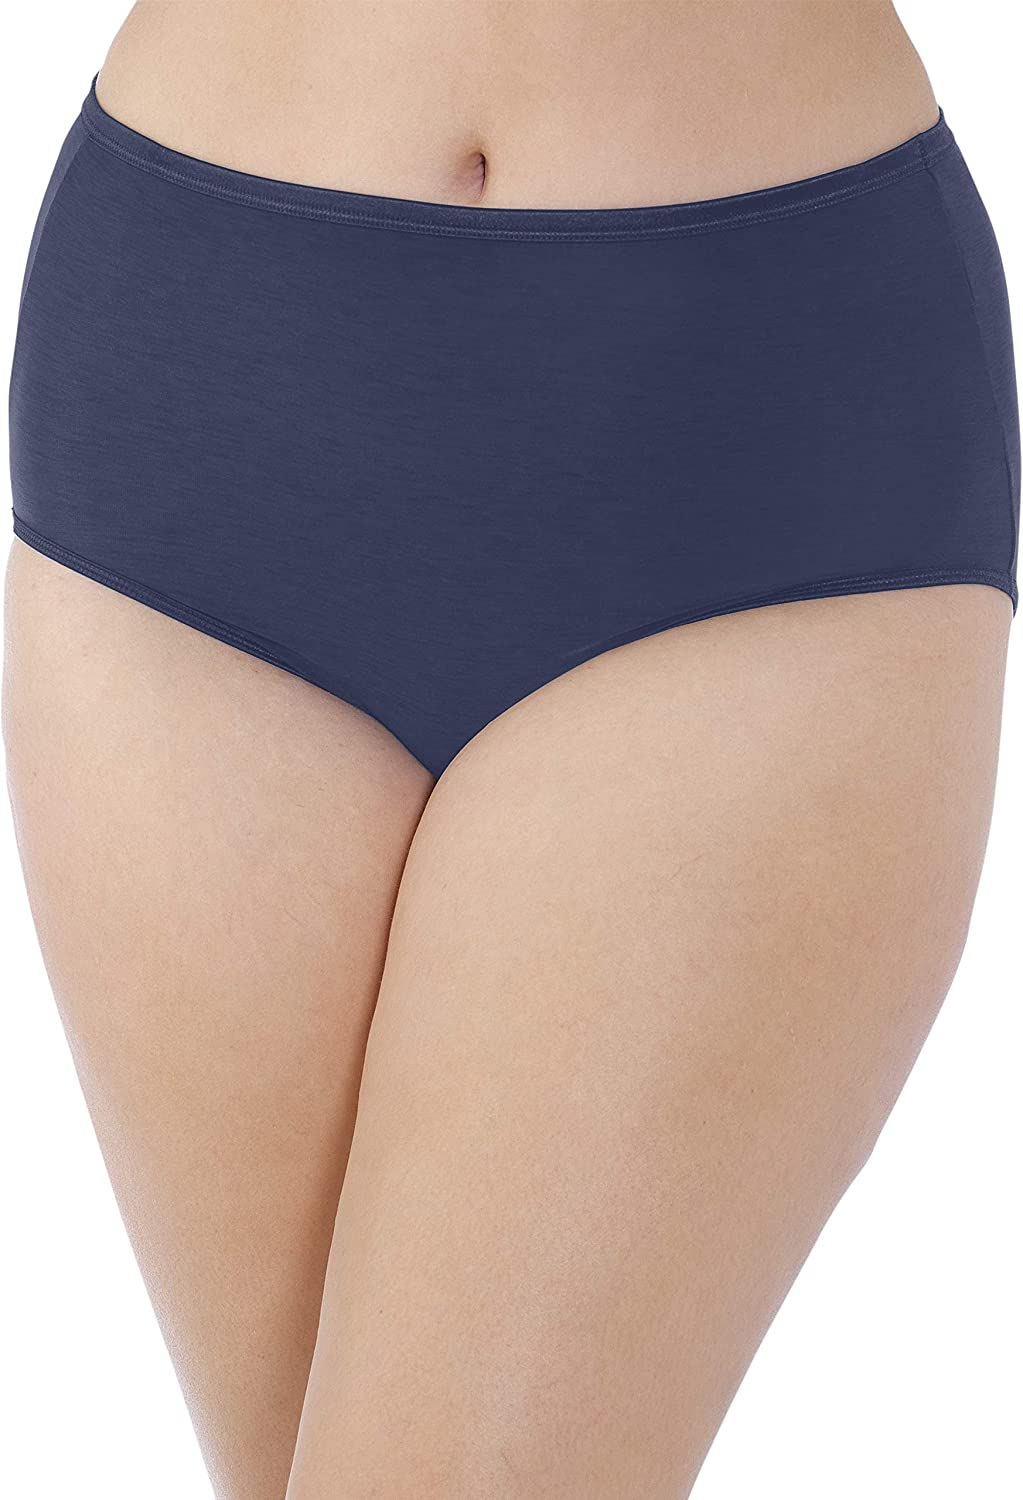 Vanity Fair Women's Illumination Brief Panties (Regular & Plus Size)